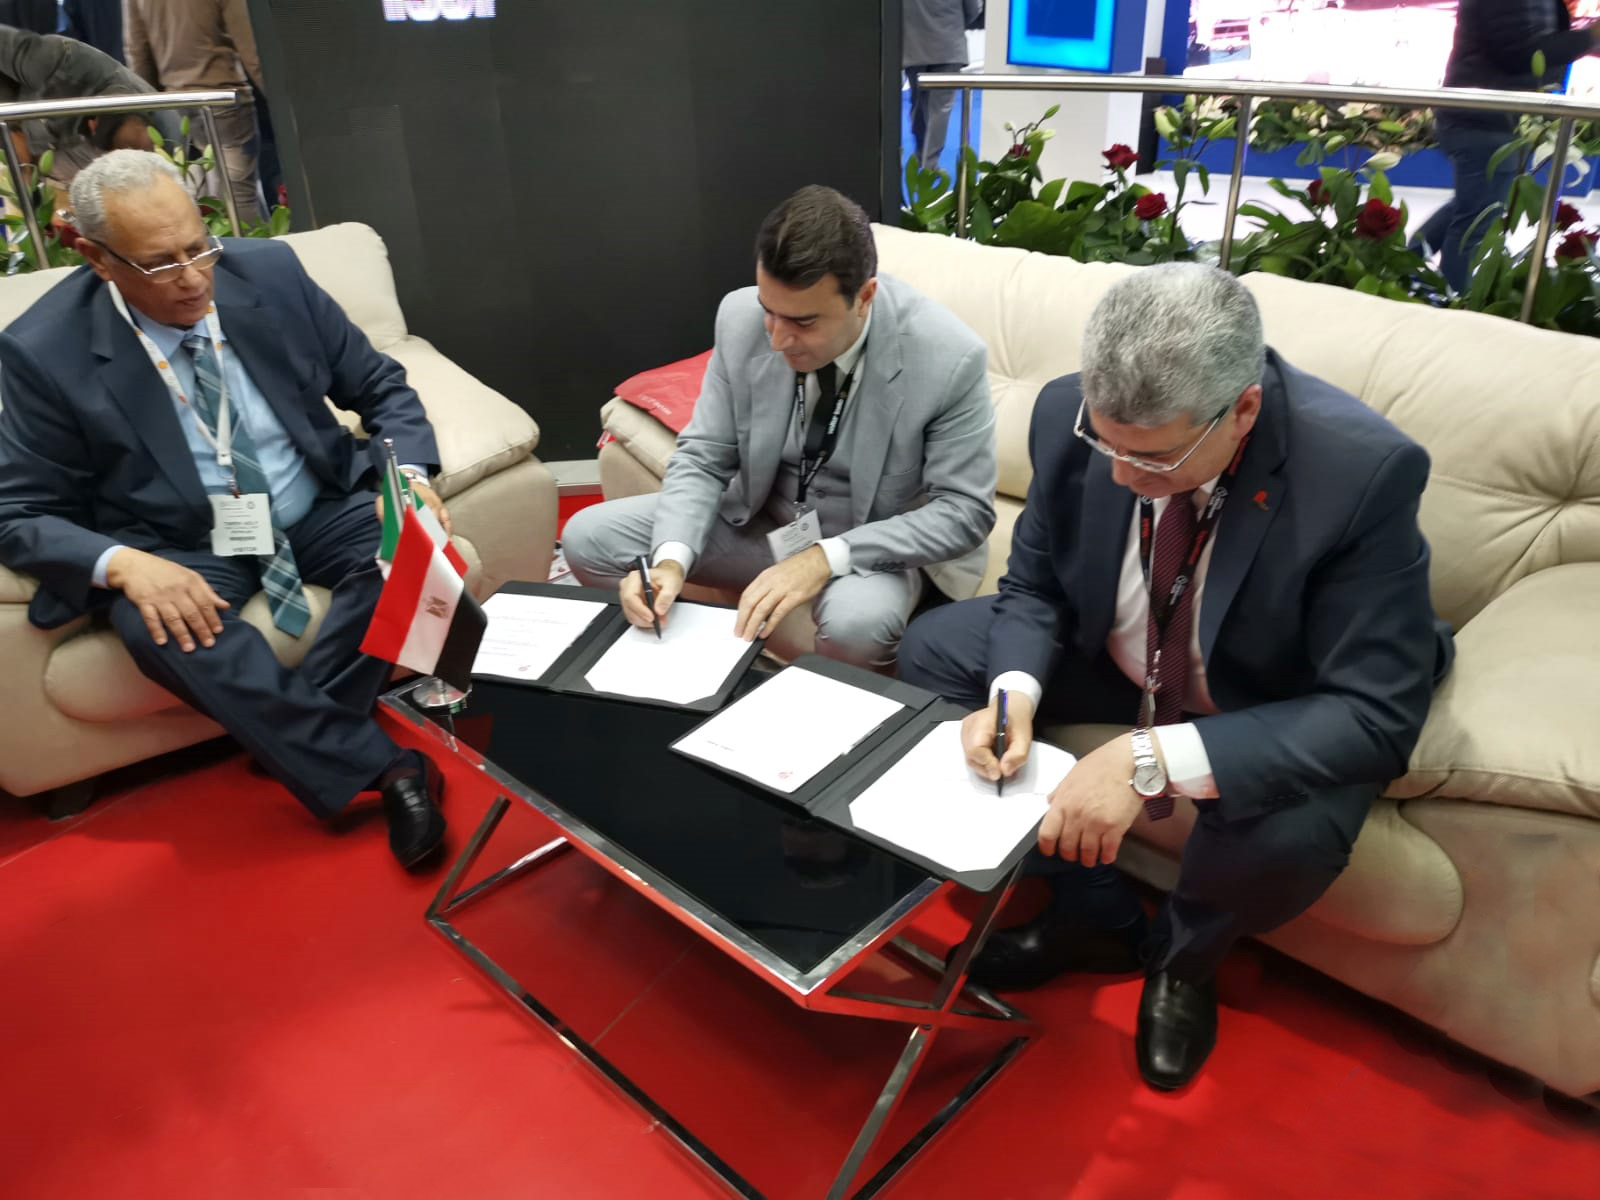 Expo Stand Egitto : Walter tosto and petrojet to sign an important agreement in egypt